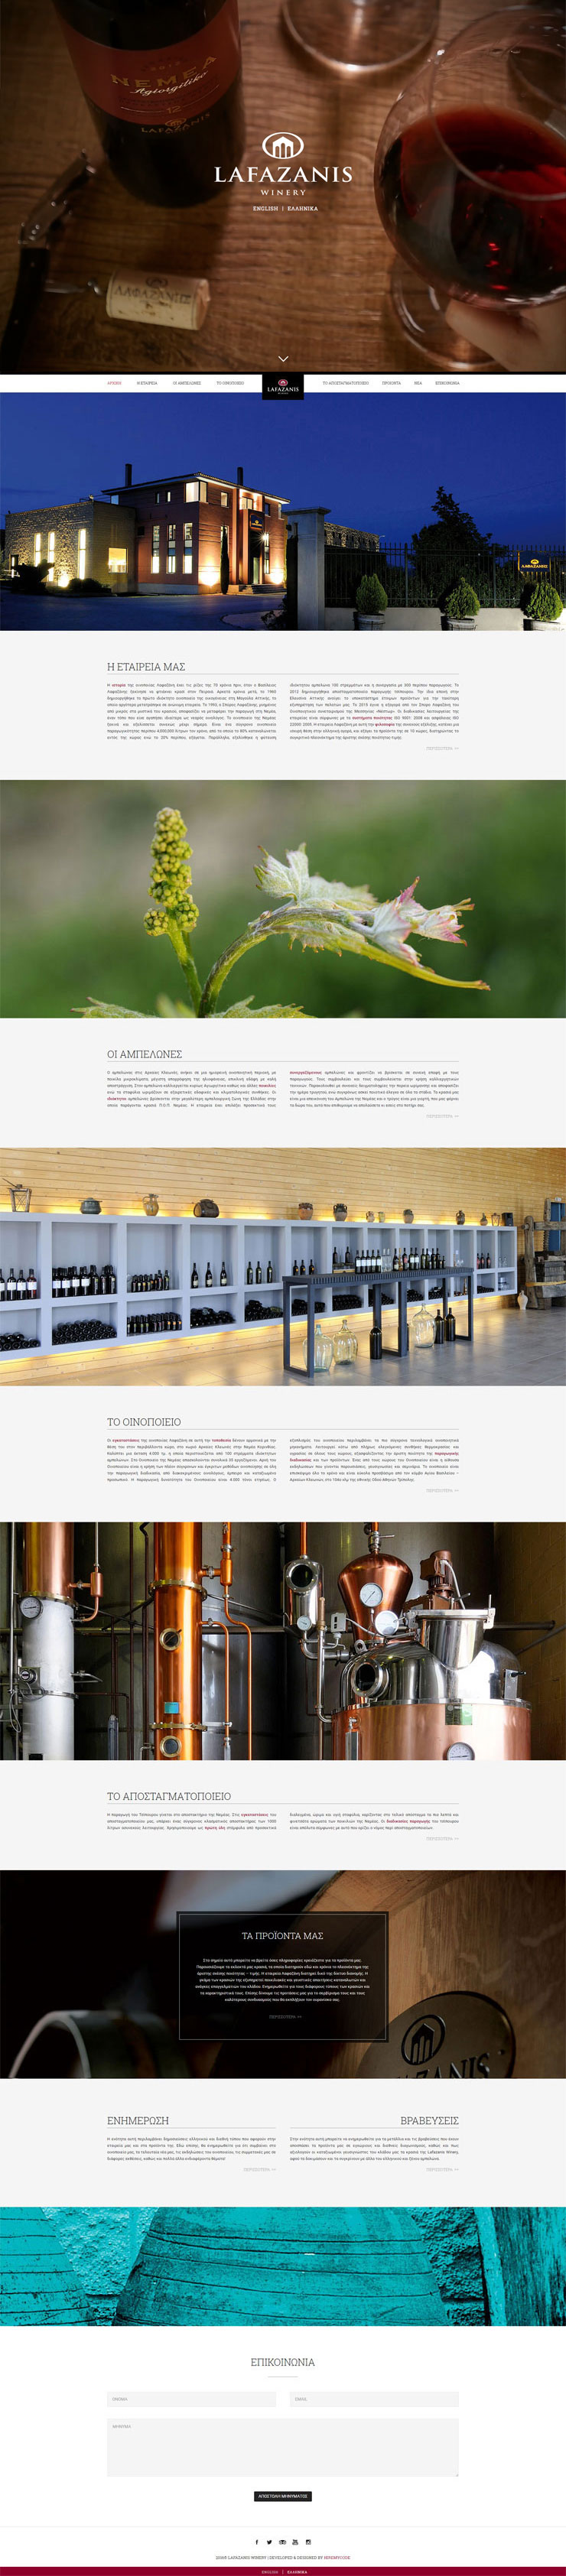 Lafazanis Winery Project